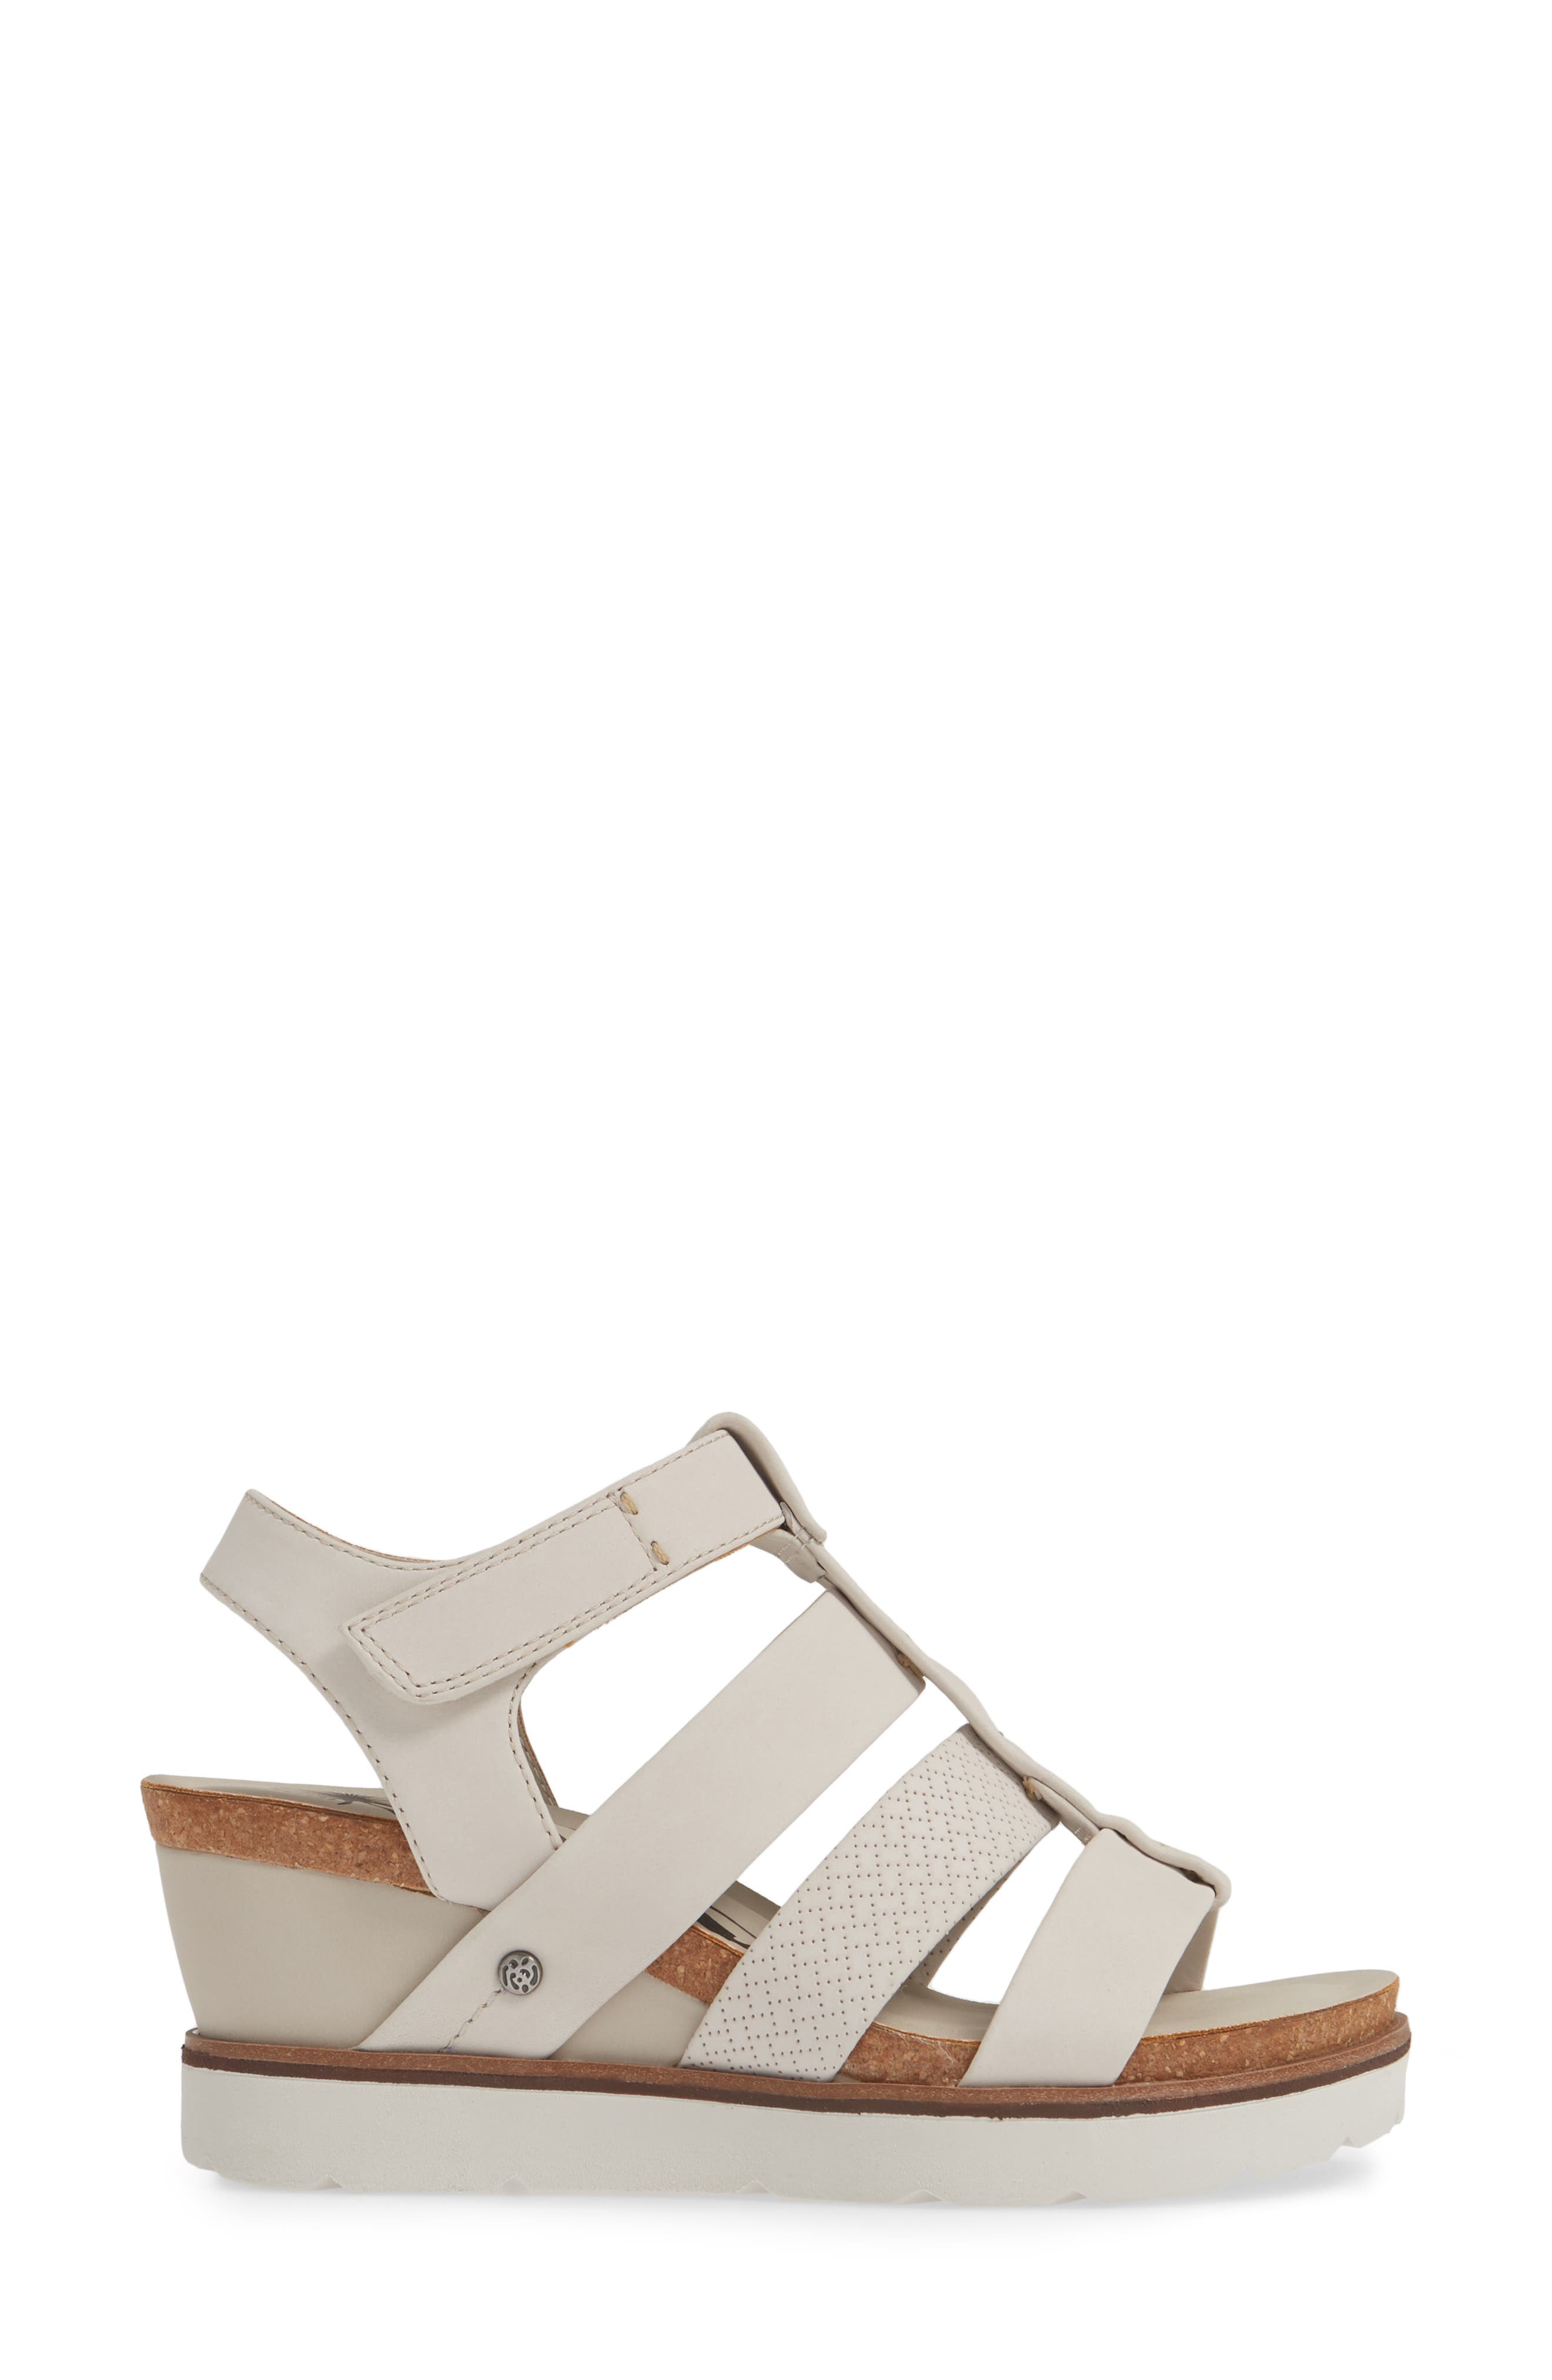 New Moon Wedge Sandal,                             Alternate thumbnail 3, color,                             DOVE GREY LEATHER